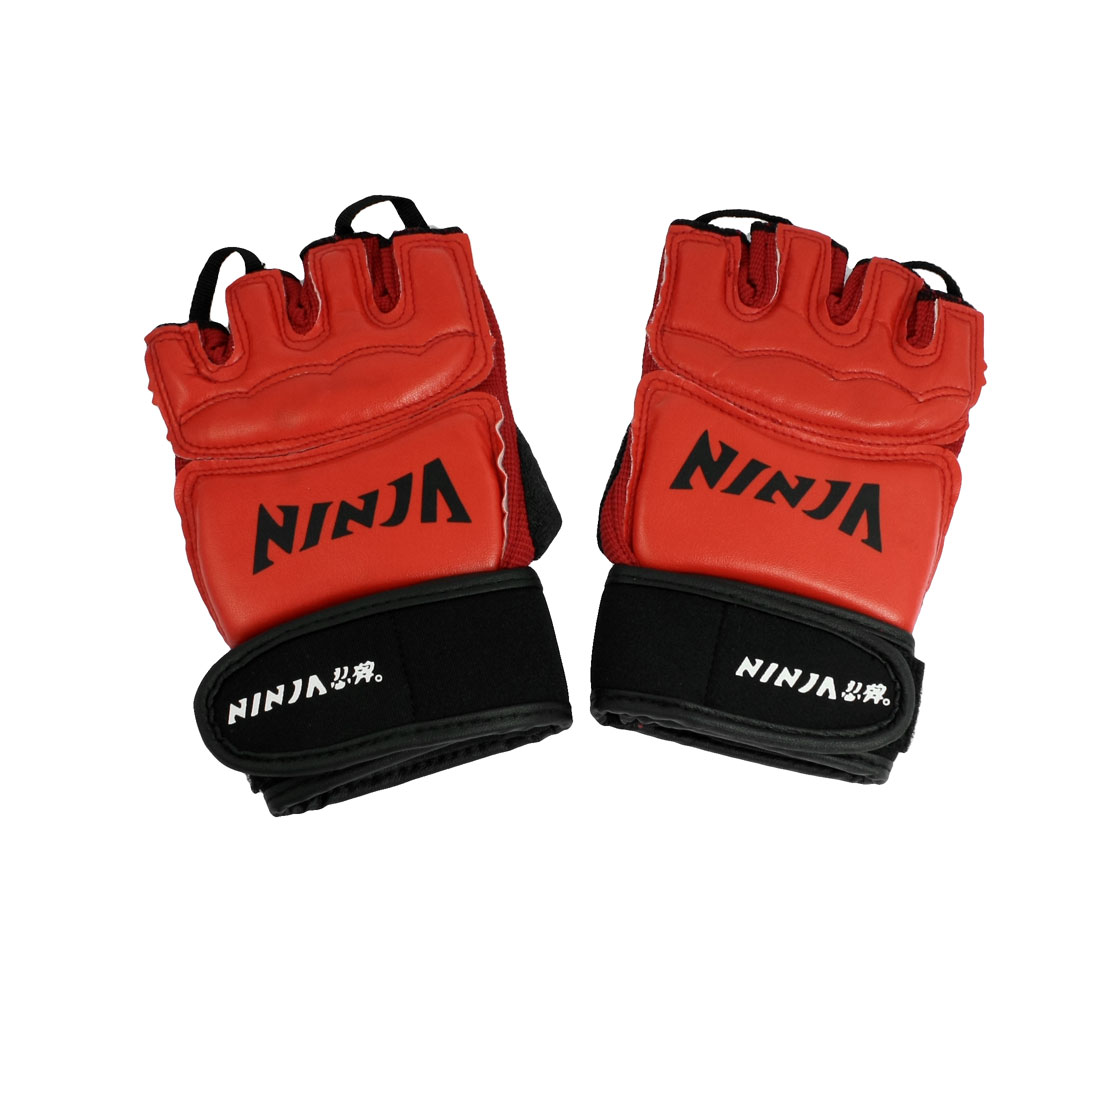 Black Red Sponge Padded Half Finger Training Boxing Gloves Pair